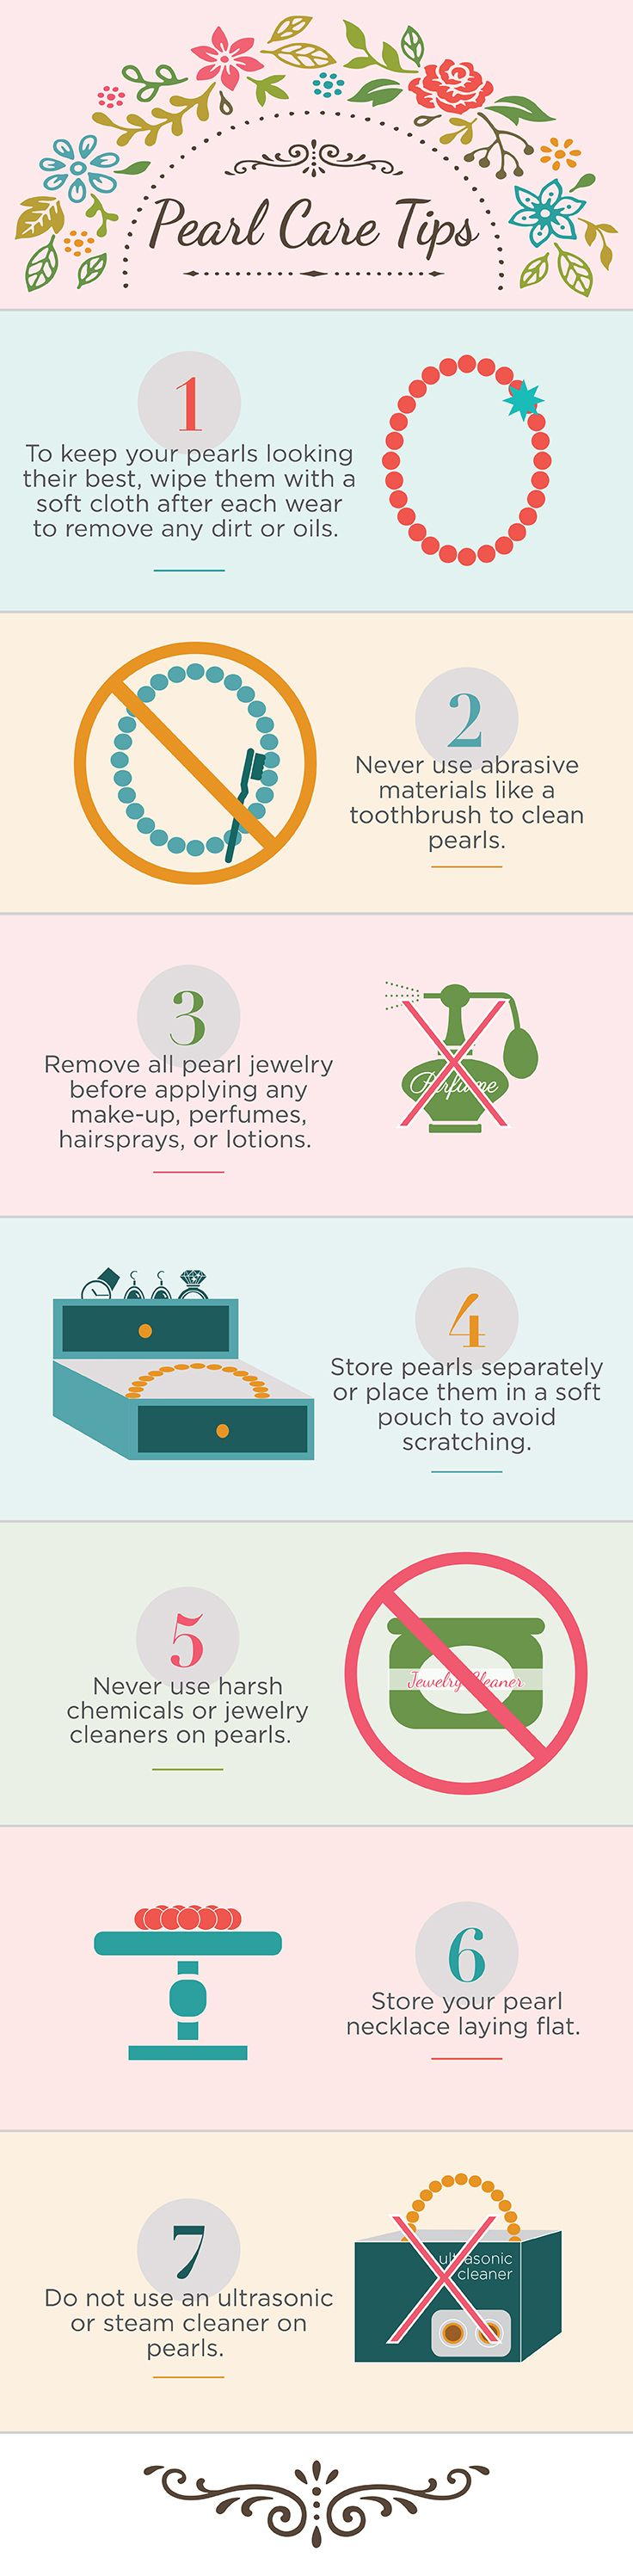 How to Care for Pearl Jewelry Caring for pearl jewelry